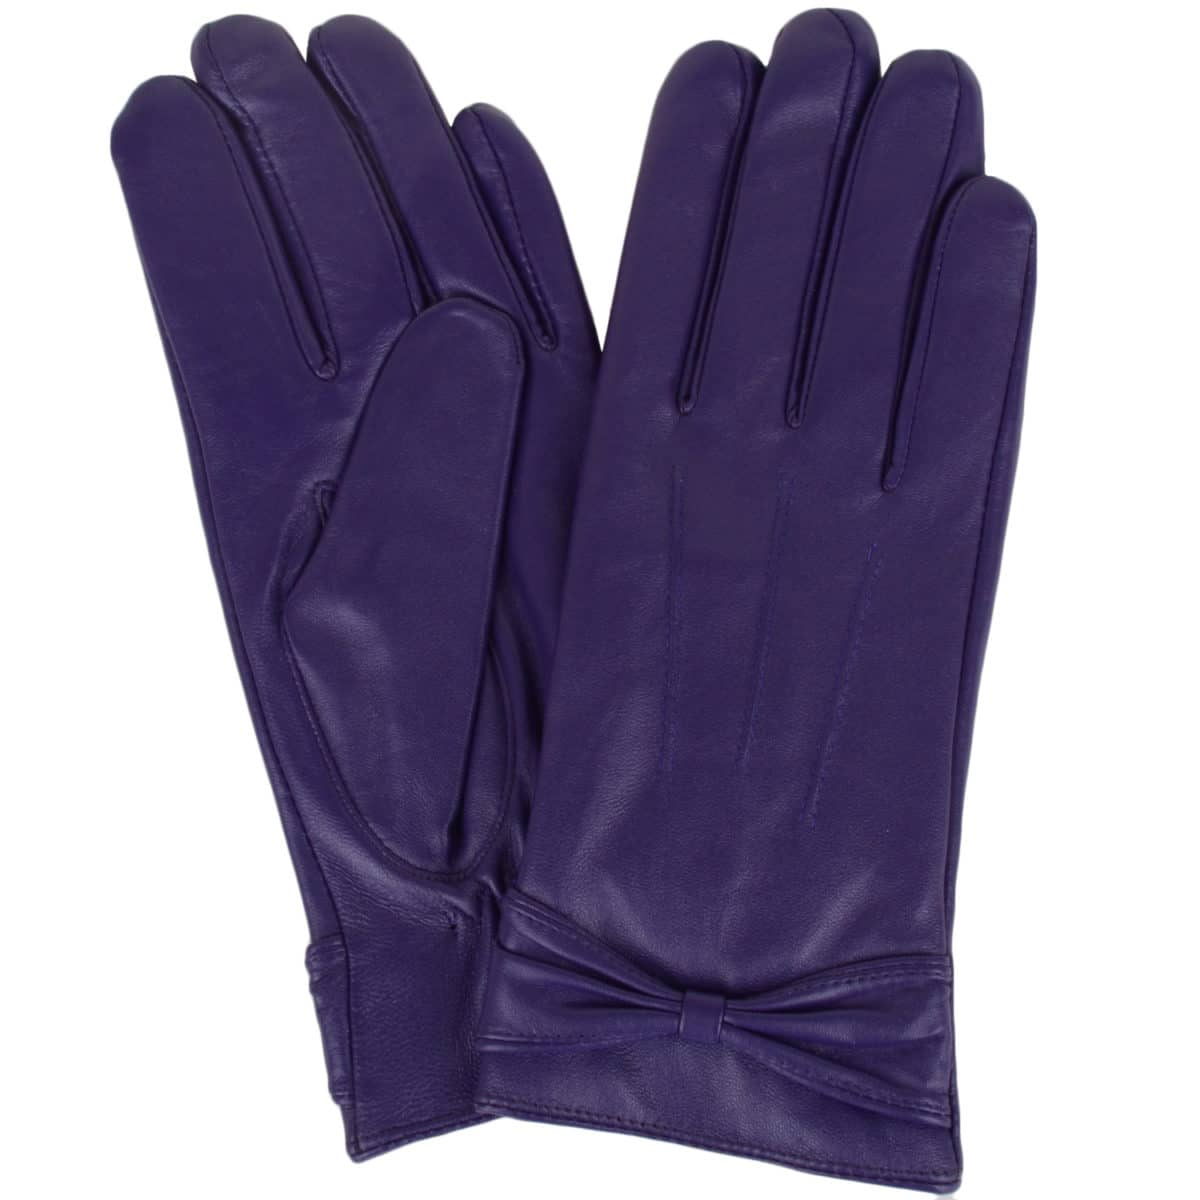 Alwen - Leather Gloves with Bow Design - Purple